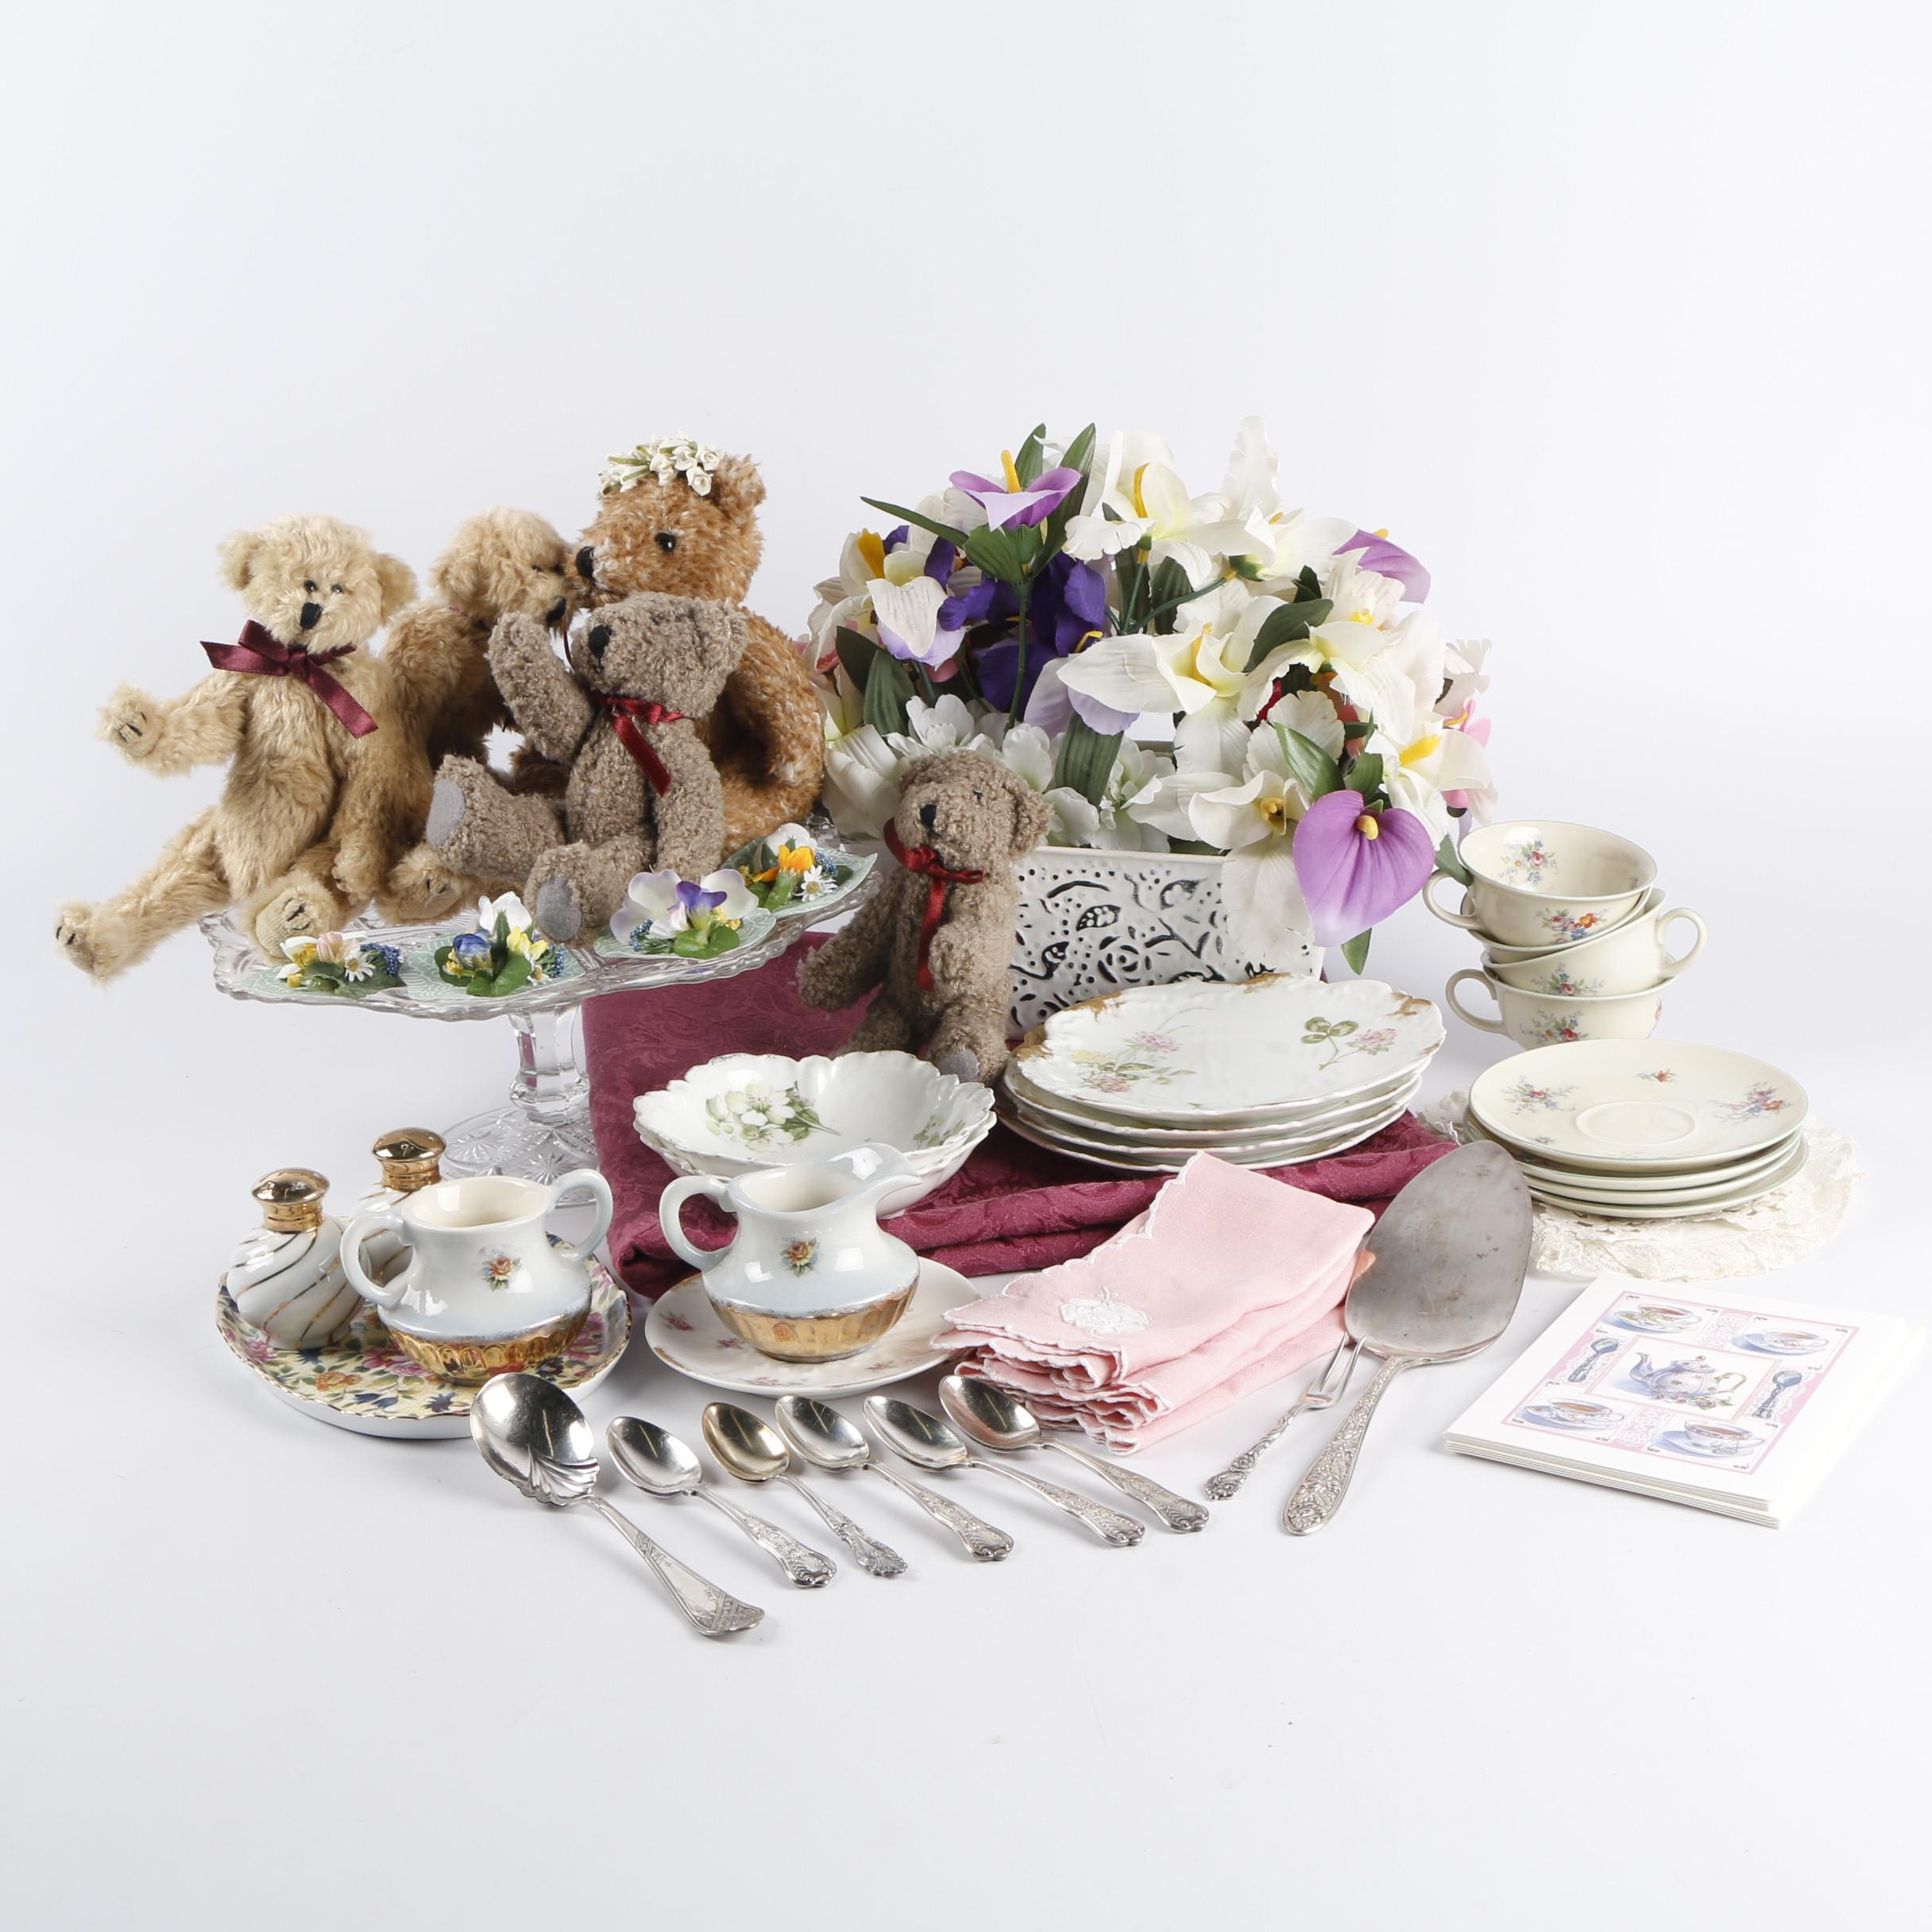 Vintage Bone China and Porcelain Tableware featuring Rosenthal with Teddy Bears